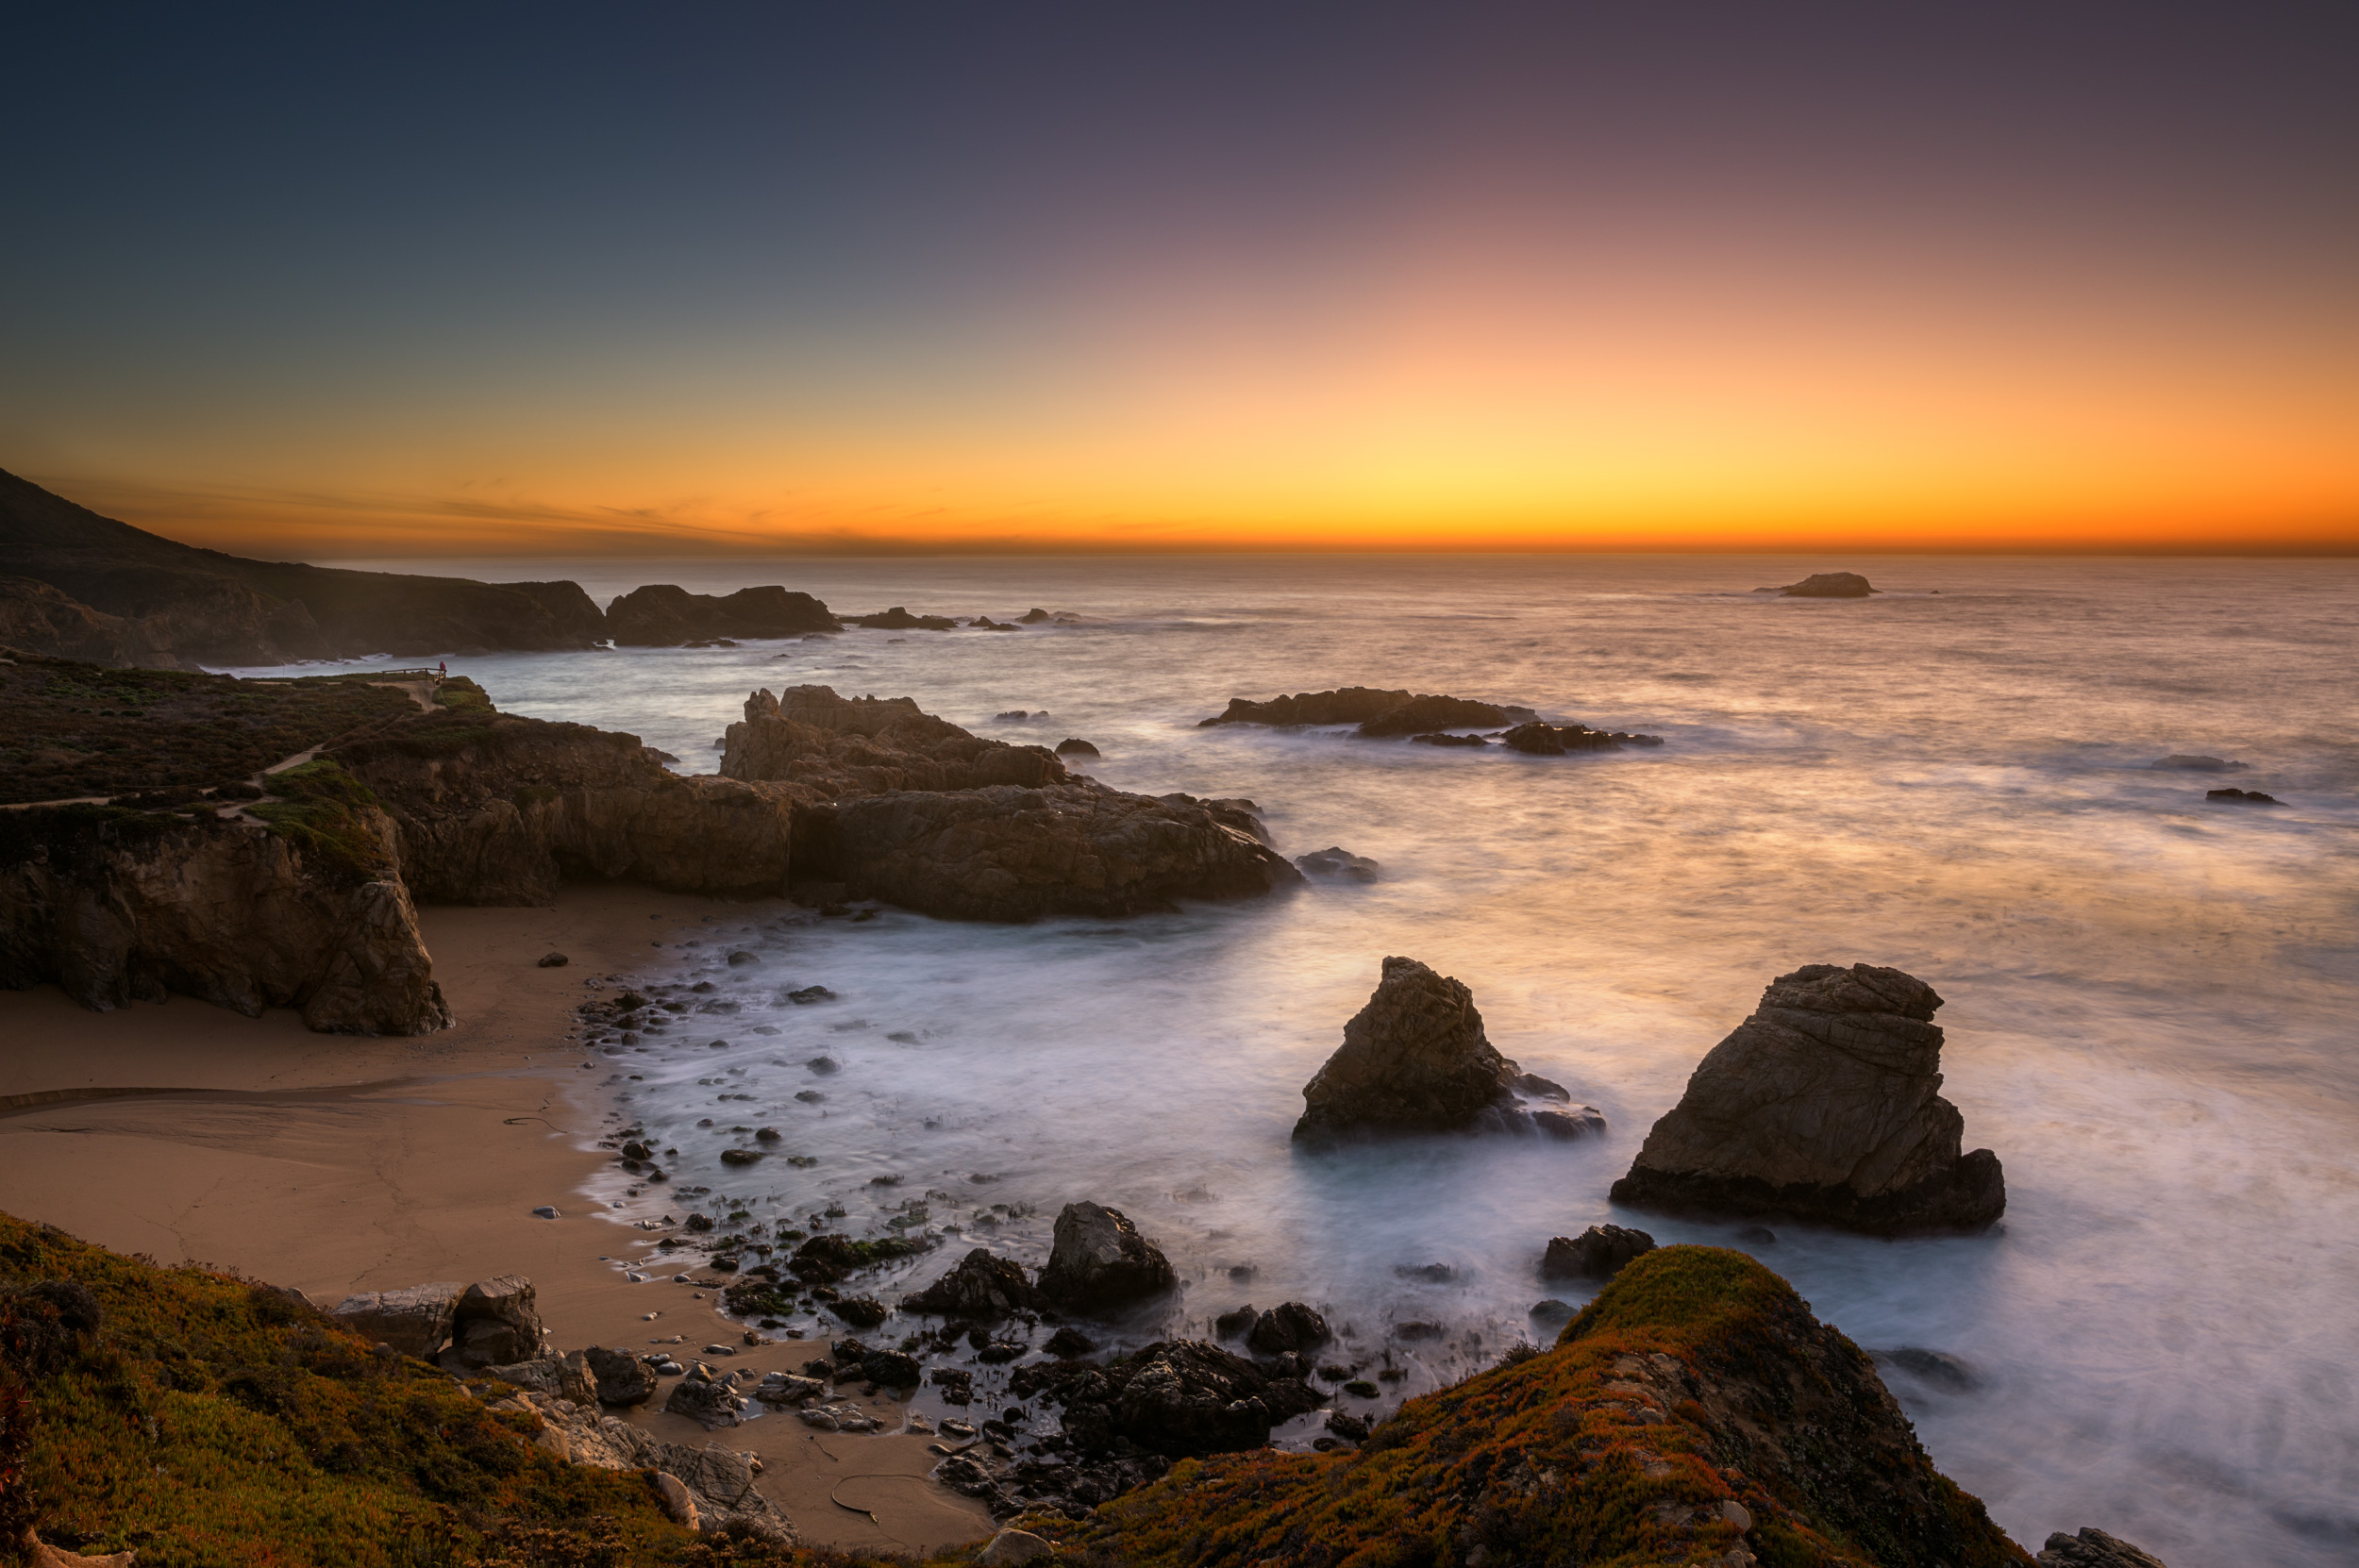 Garrapata State Park, just after sunset.